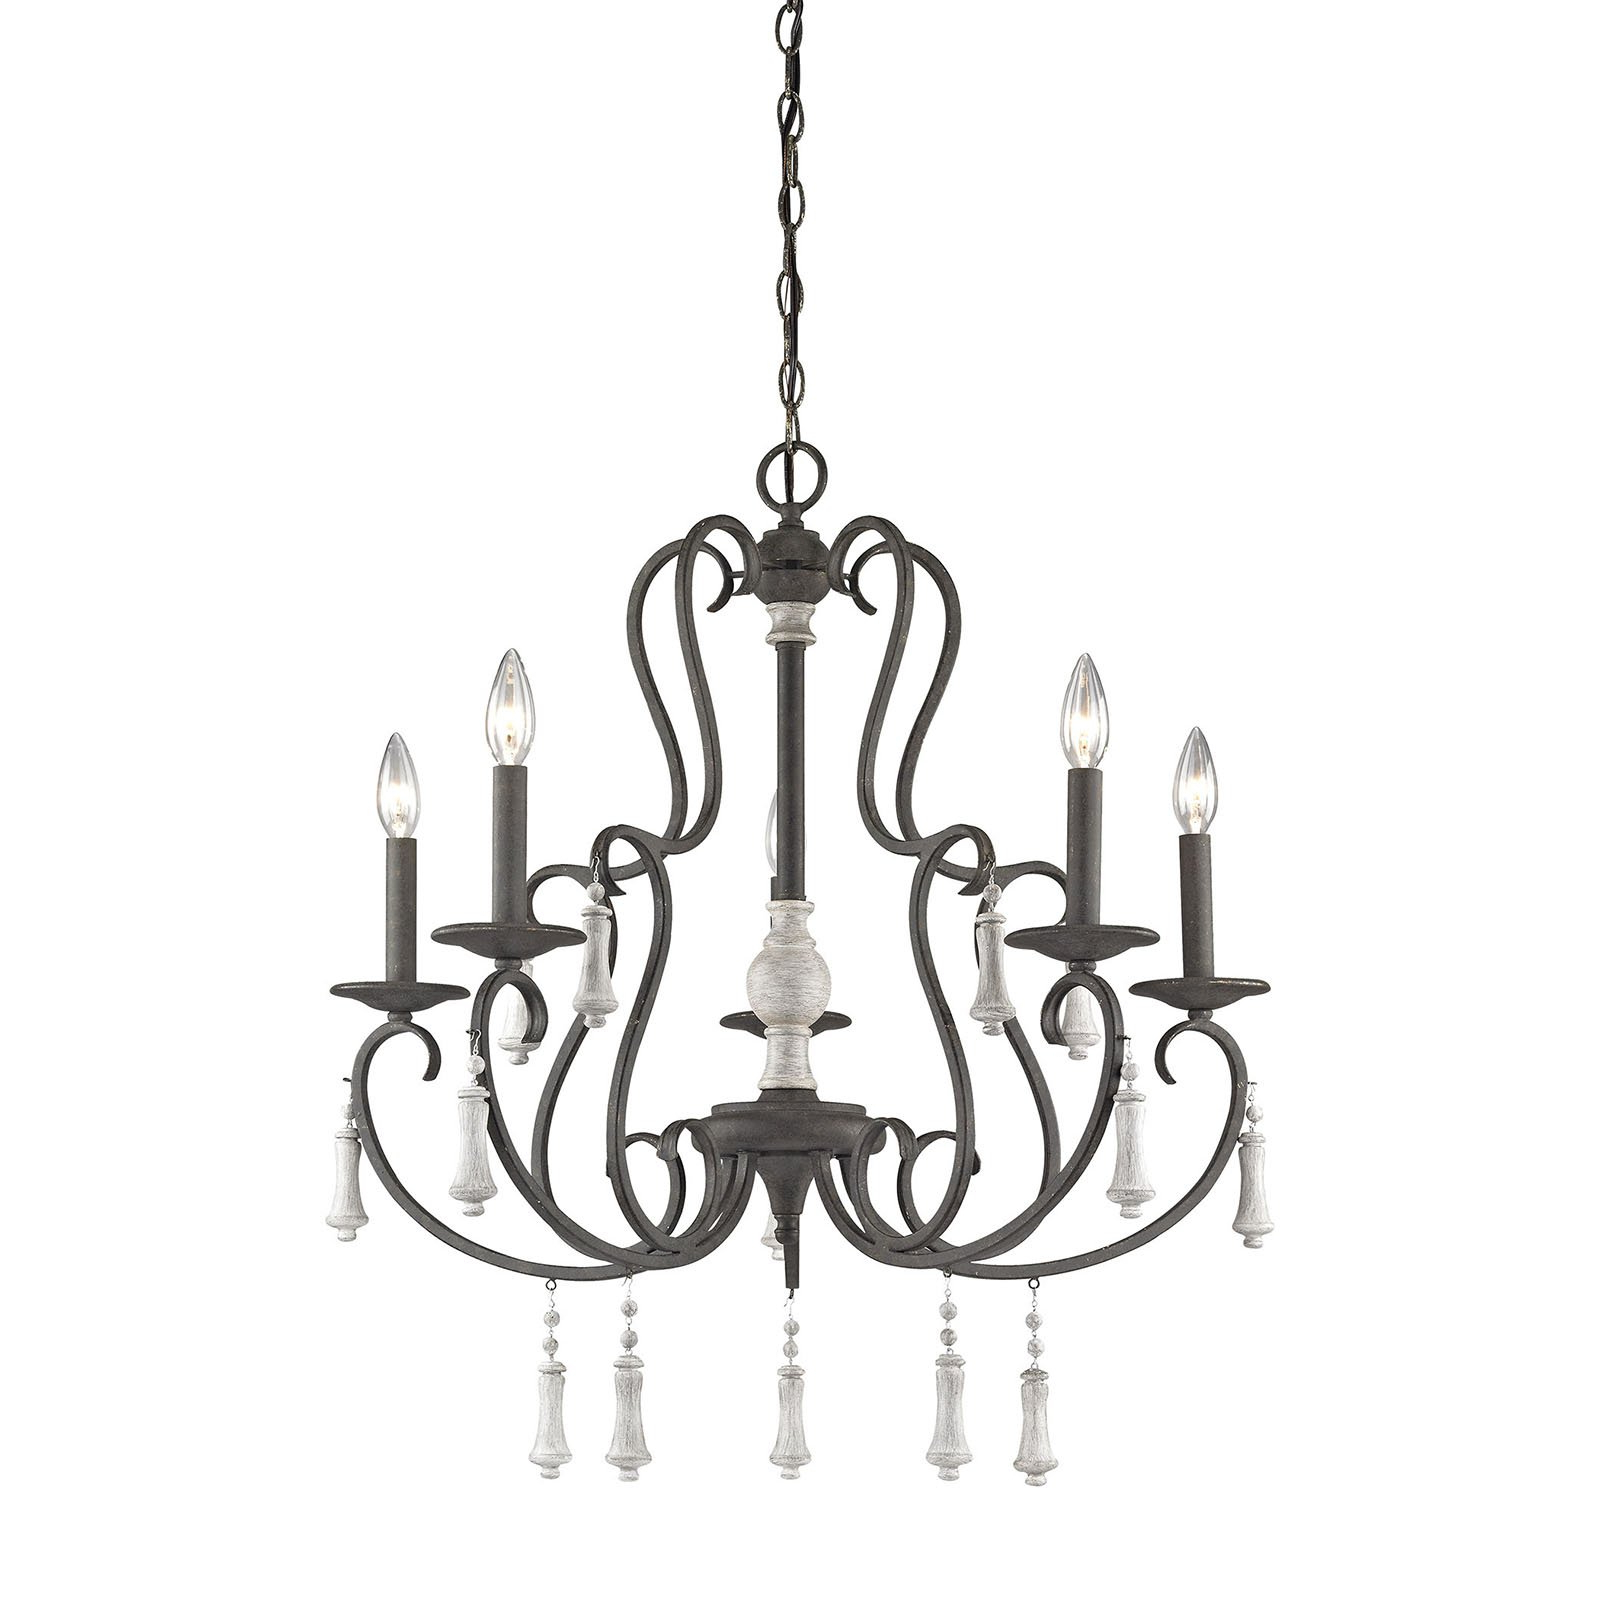 Popular Elk Lighting Porto Cristo 52022/5 5 Light Chandelier In 2019 With Regard To Florentina 5 Light Candle Style Chandeliers (View 15 of 20)